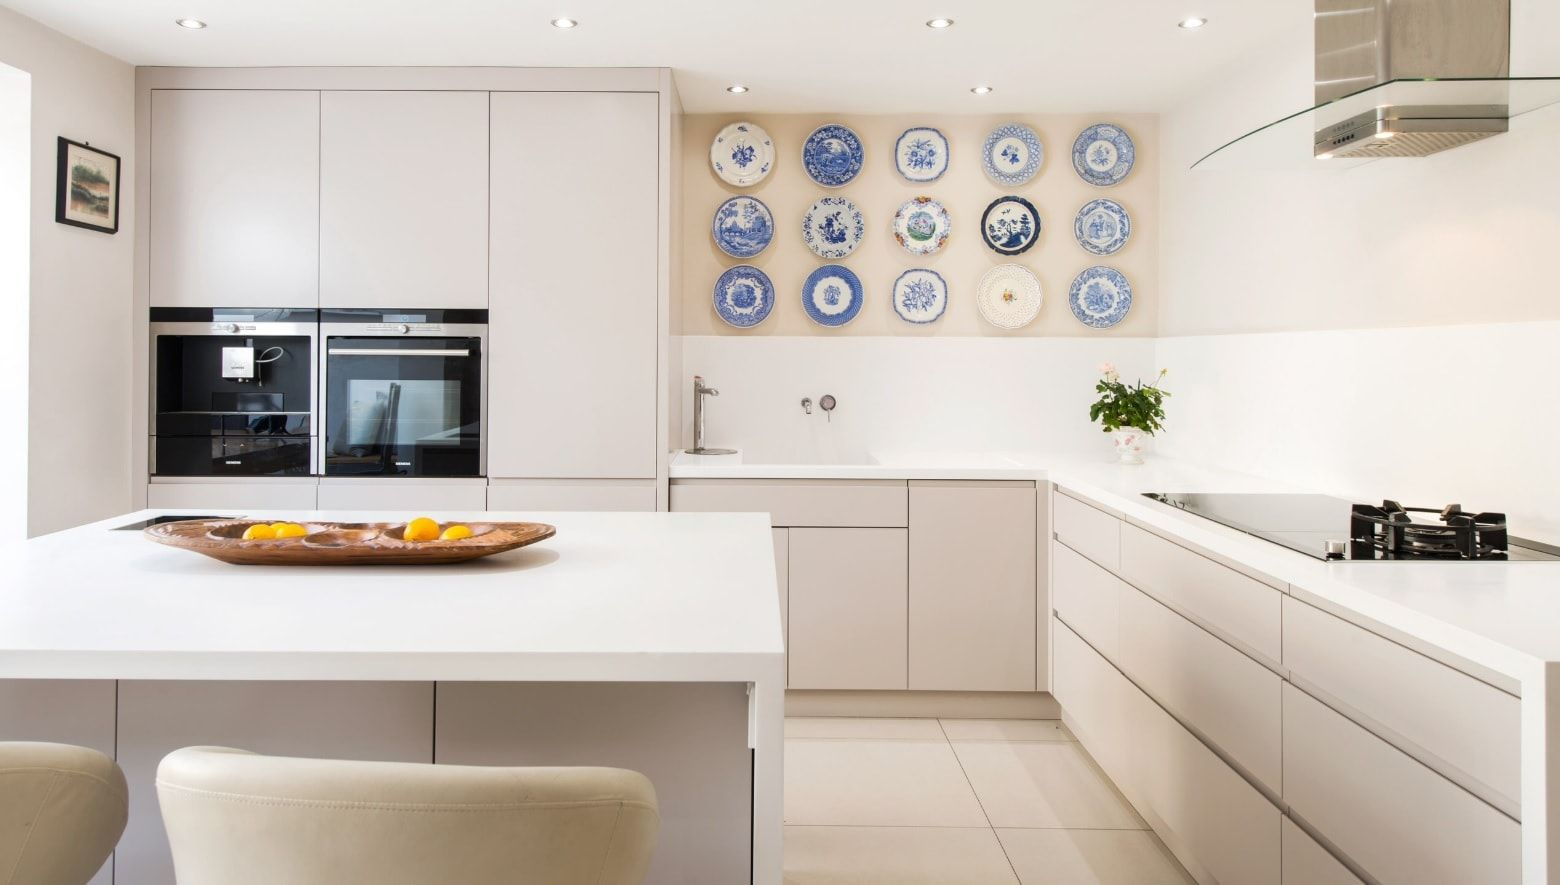 8 creative design tips on occupying the empty wall. Modern kitchen with modular furniture and plates at the wall